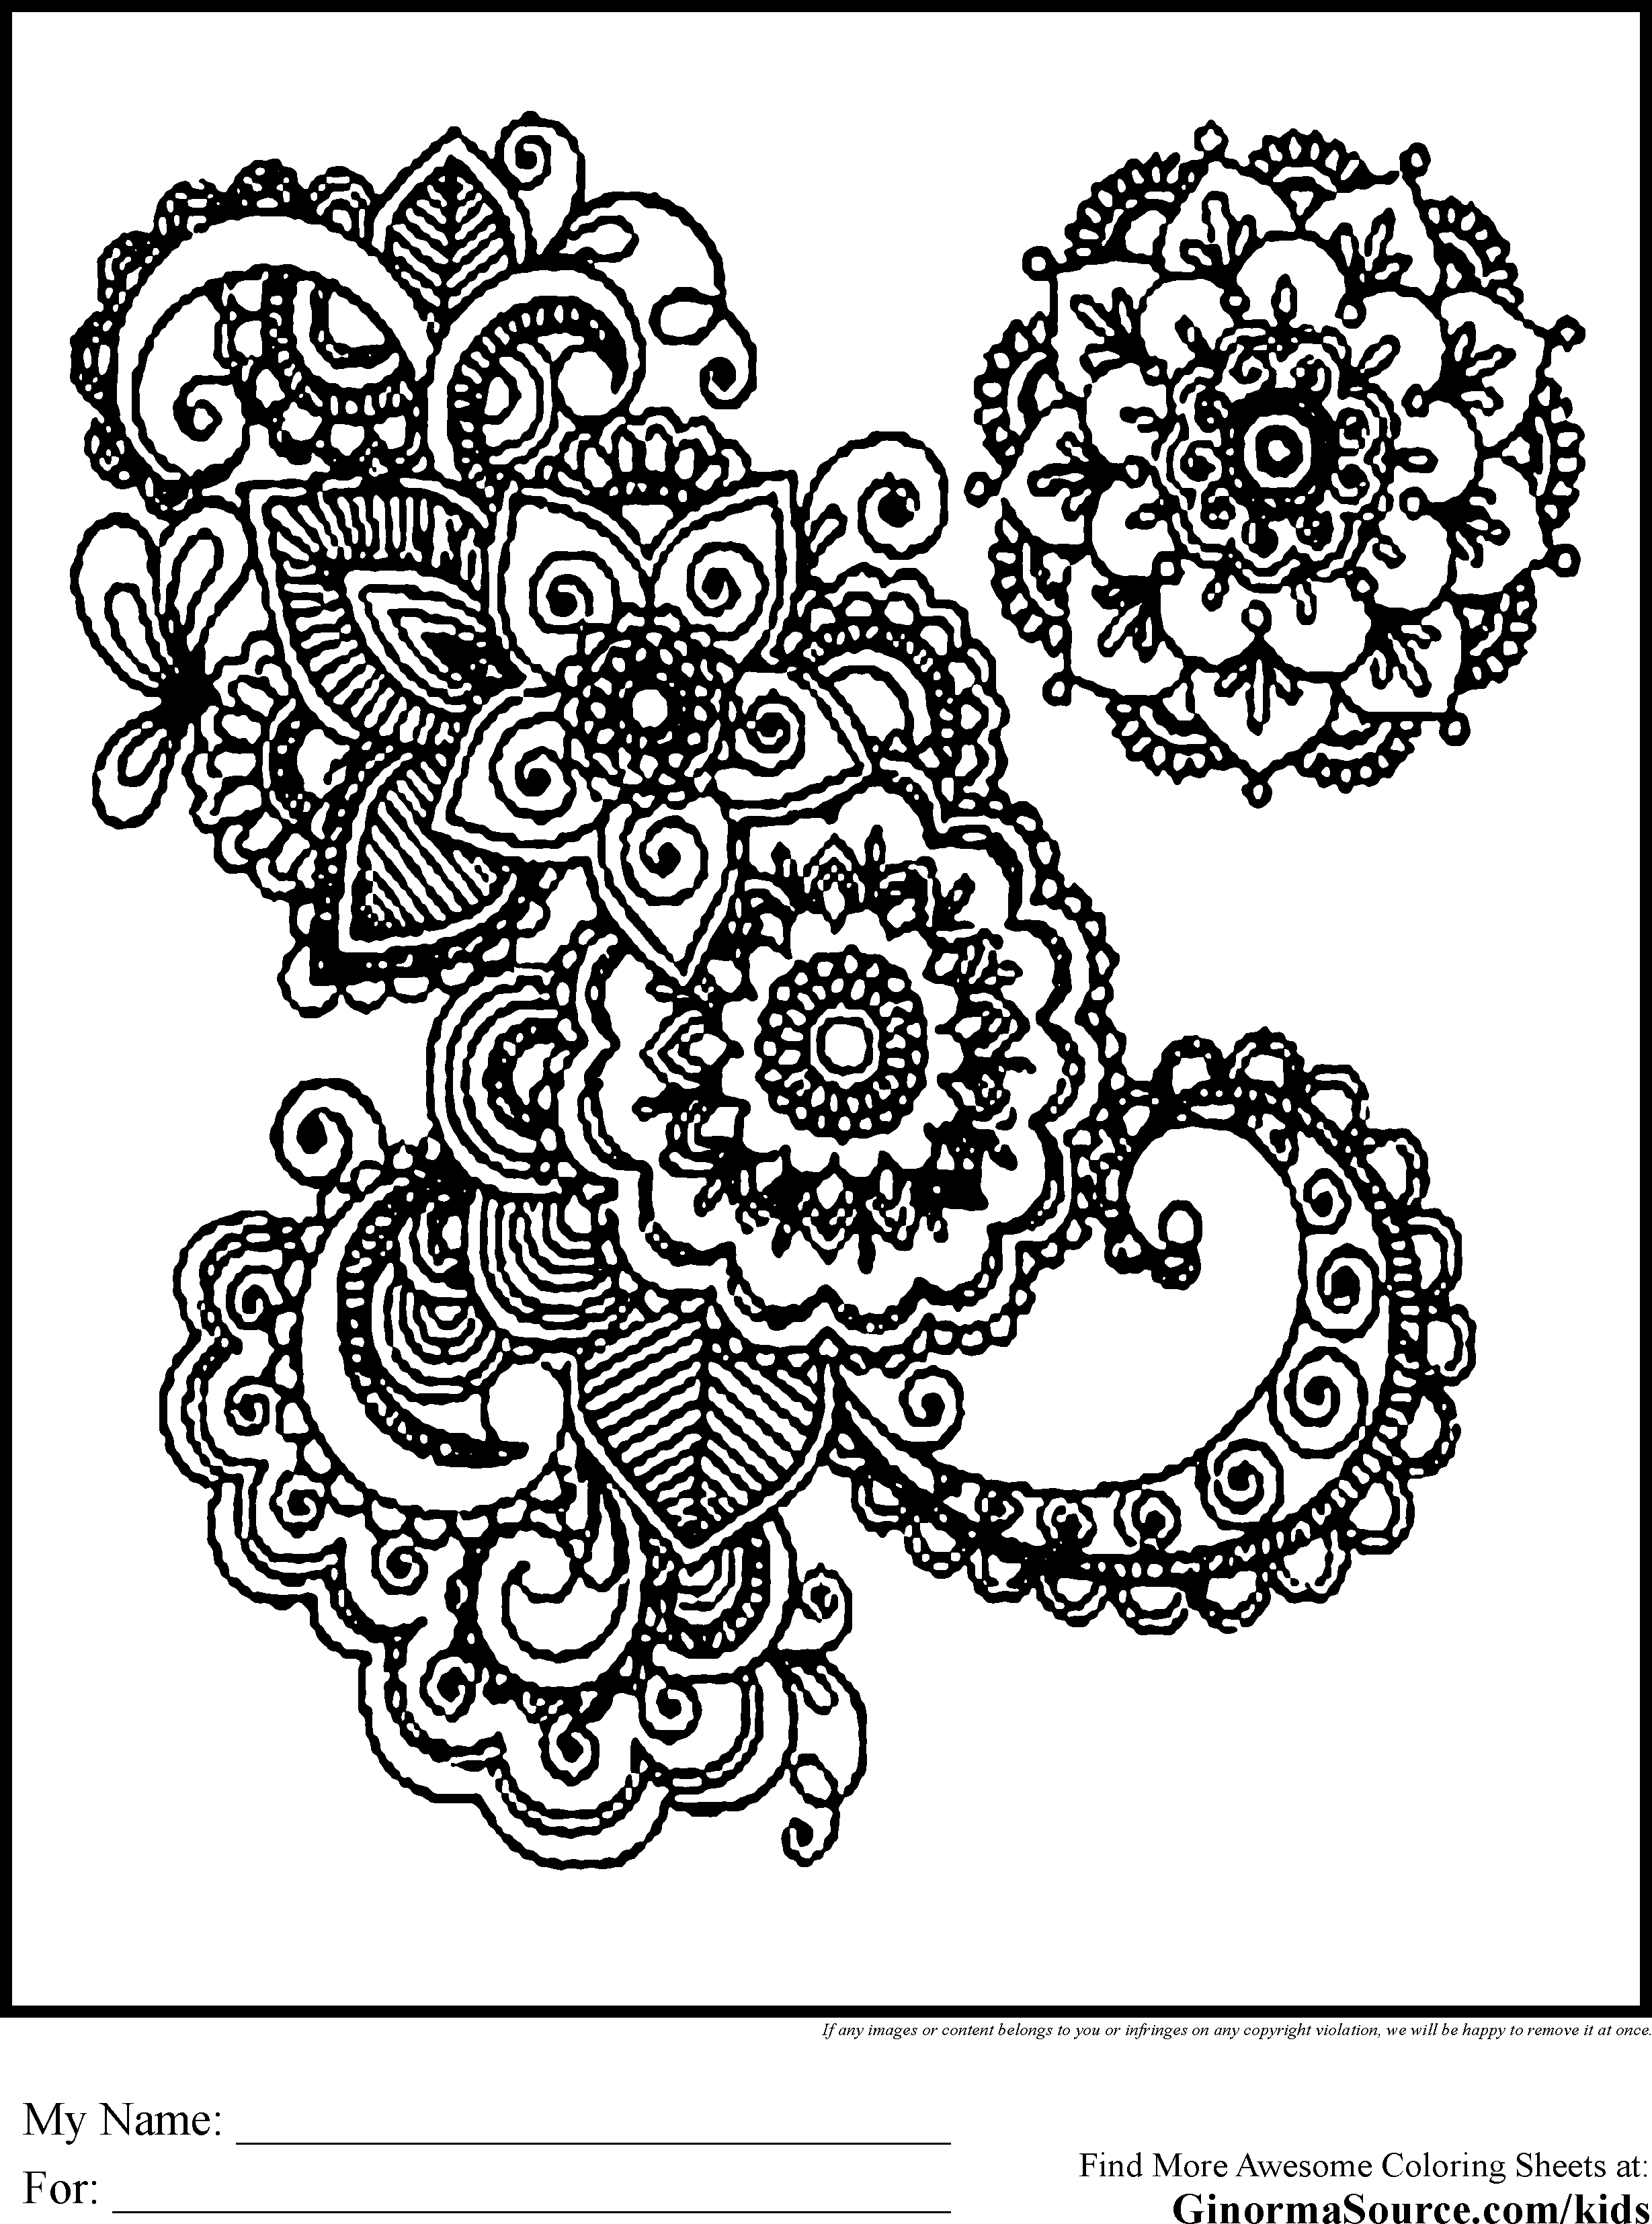 cool abstract coloring pages wolf coloring pages for adults designs coloring pages pages coloring abstract cool